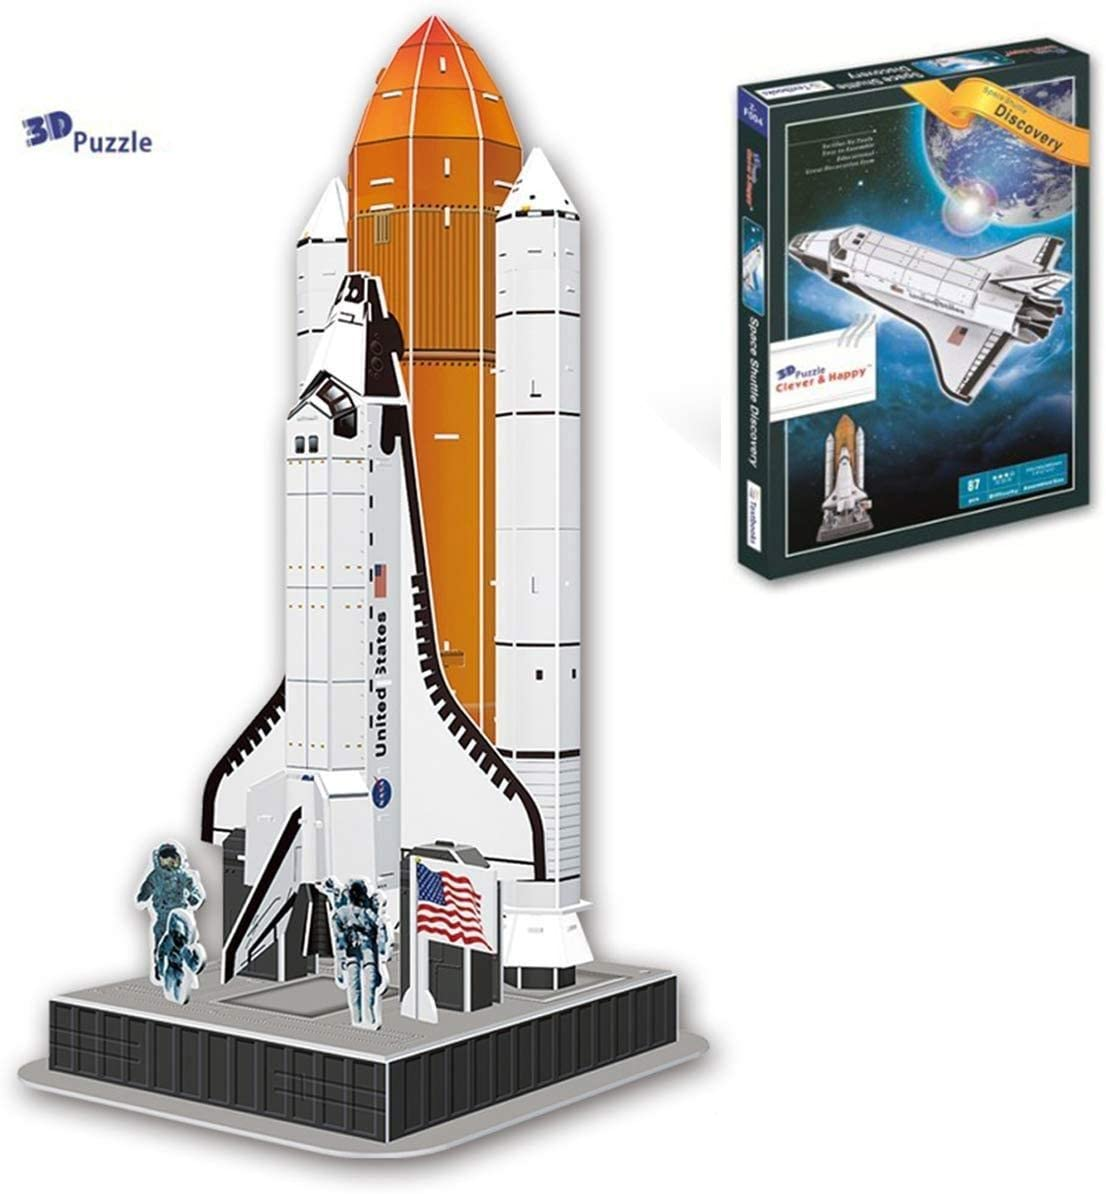 Liberty Imports 3D Puzzle DIY Model Set - Worlds Greatest Architecture Jigsaw Puzzles Building Kit (Space Shuttle Discovery)